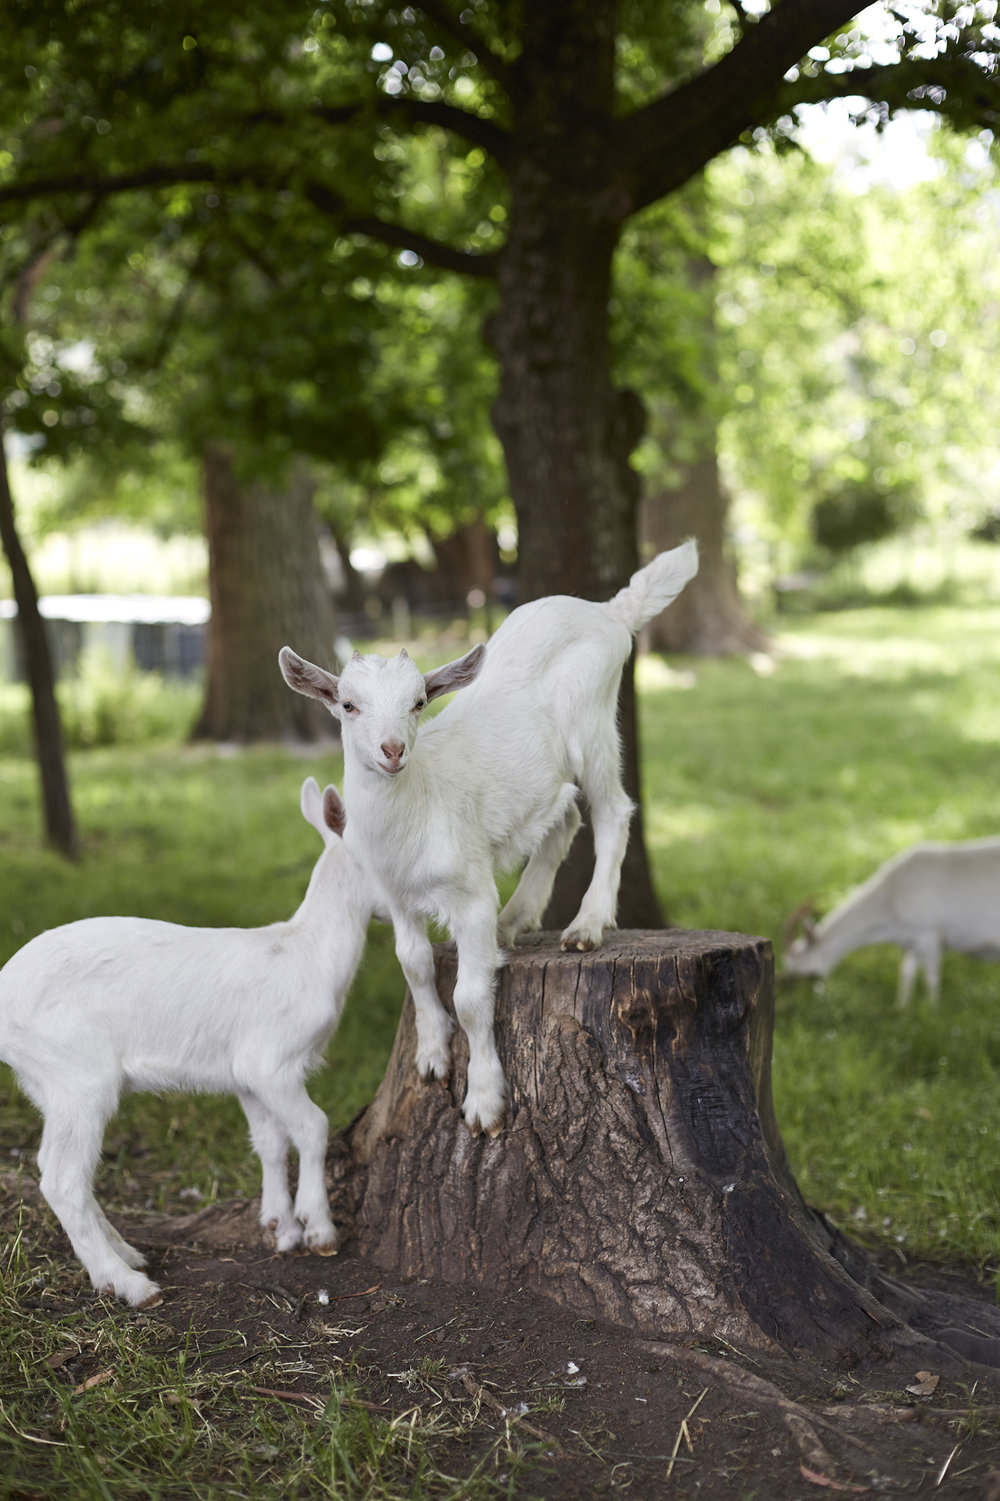 goat on stump.jpg